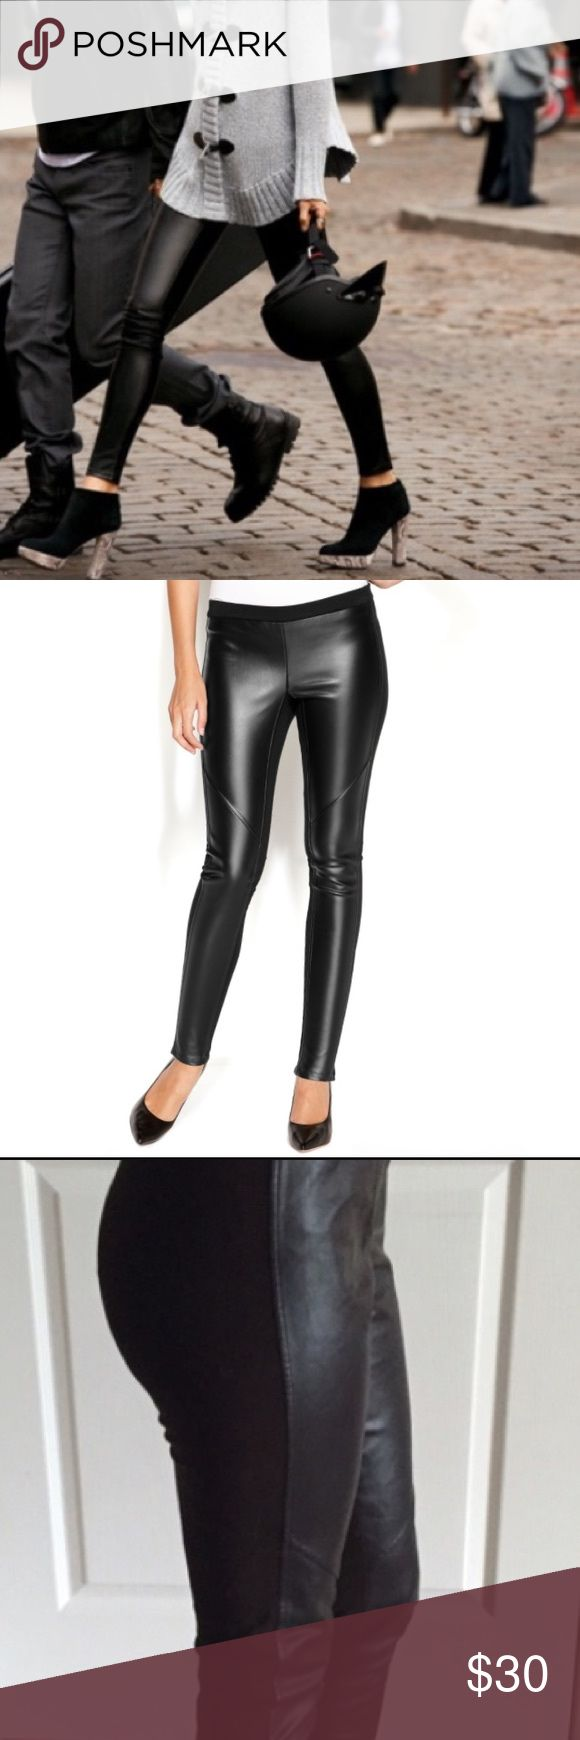 Michael Kors leggings Front half is leather/back half is stretchy material. Very stylish and comfortable. Lightly worn. Michael Kors Pants Leggings